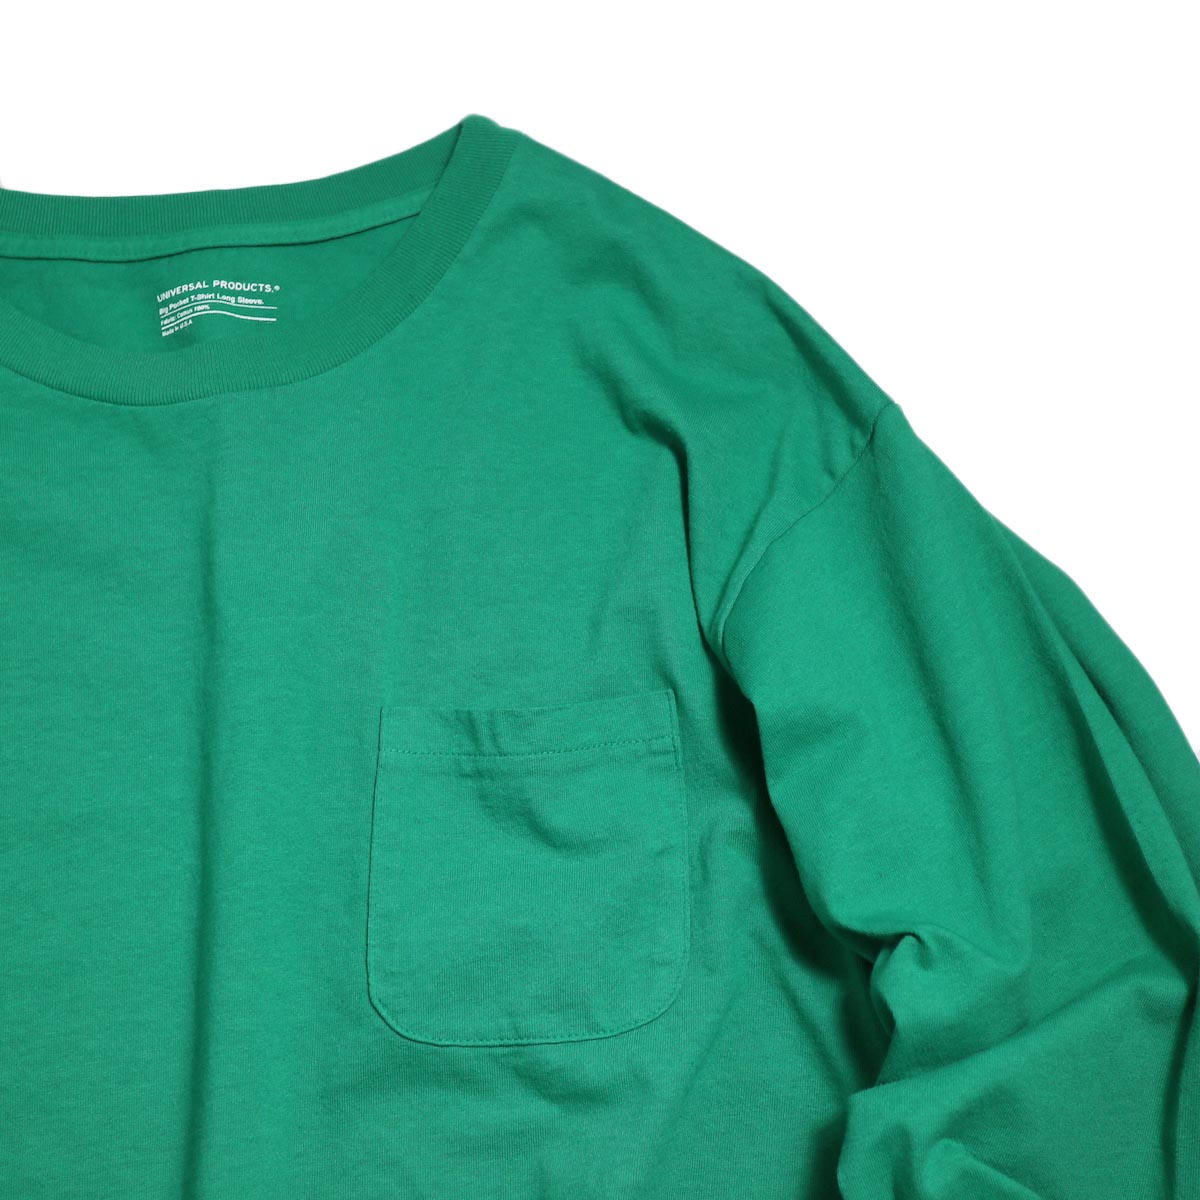 UNIVERSAL PRODUCTS / Heavy Weight L/S T-Shirt -Green ポケット